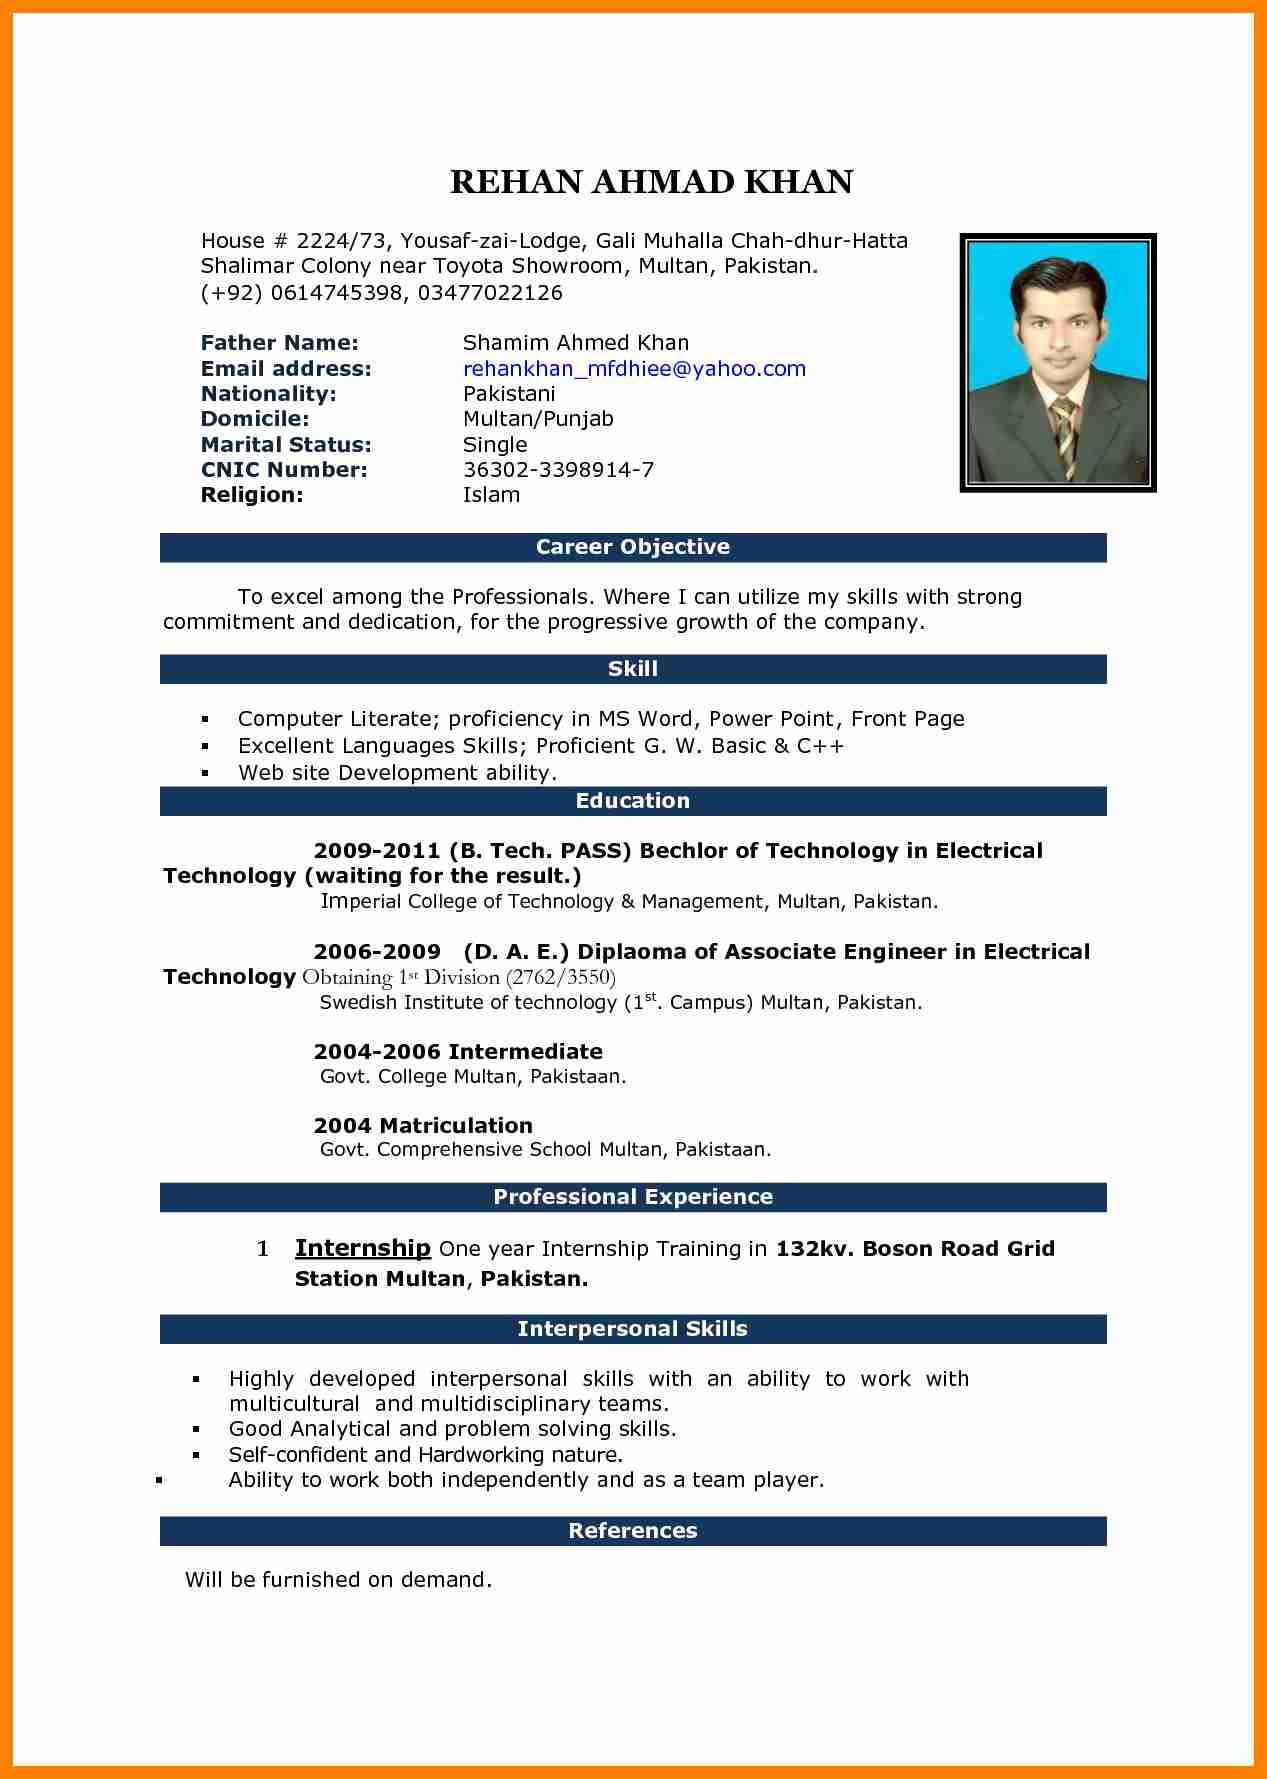 Resume Format Doc For Back Office Executive Admin Assistant Microsoft Office Resume Templates Free Resume Format Download Download Cv Format Job Resume Format